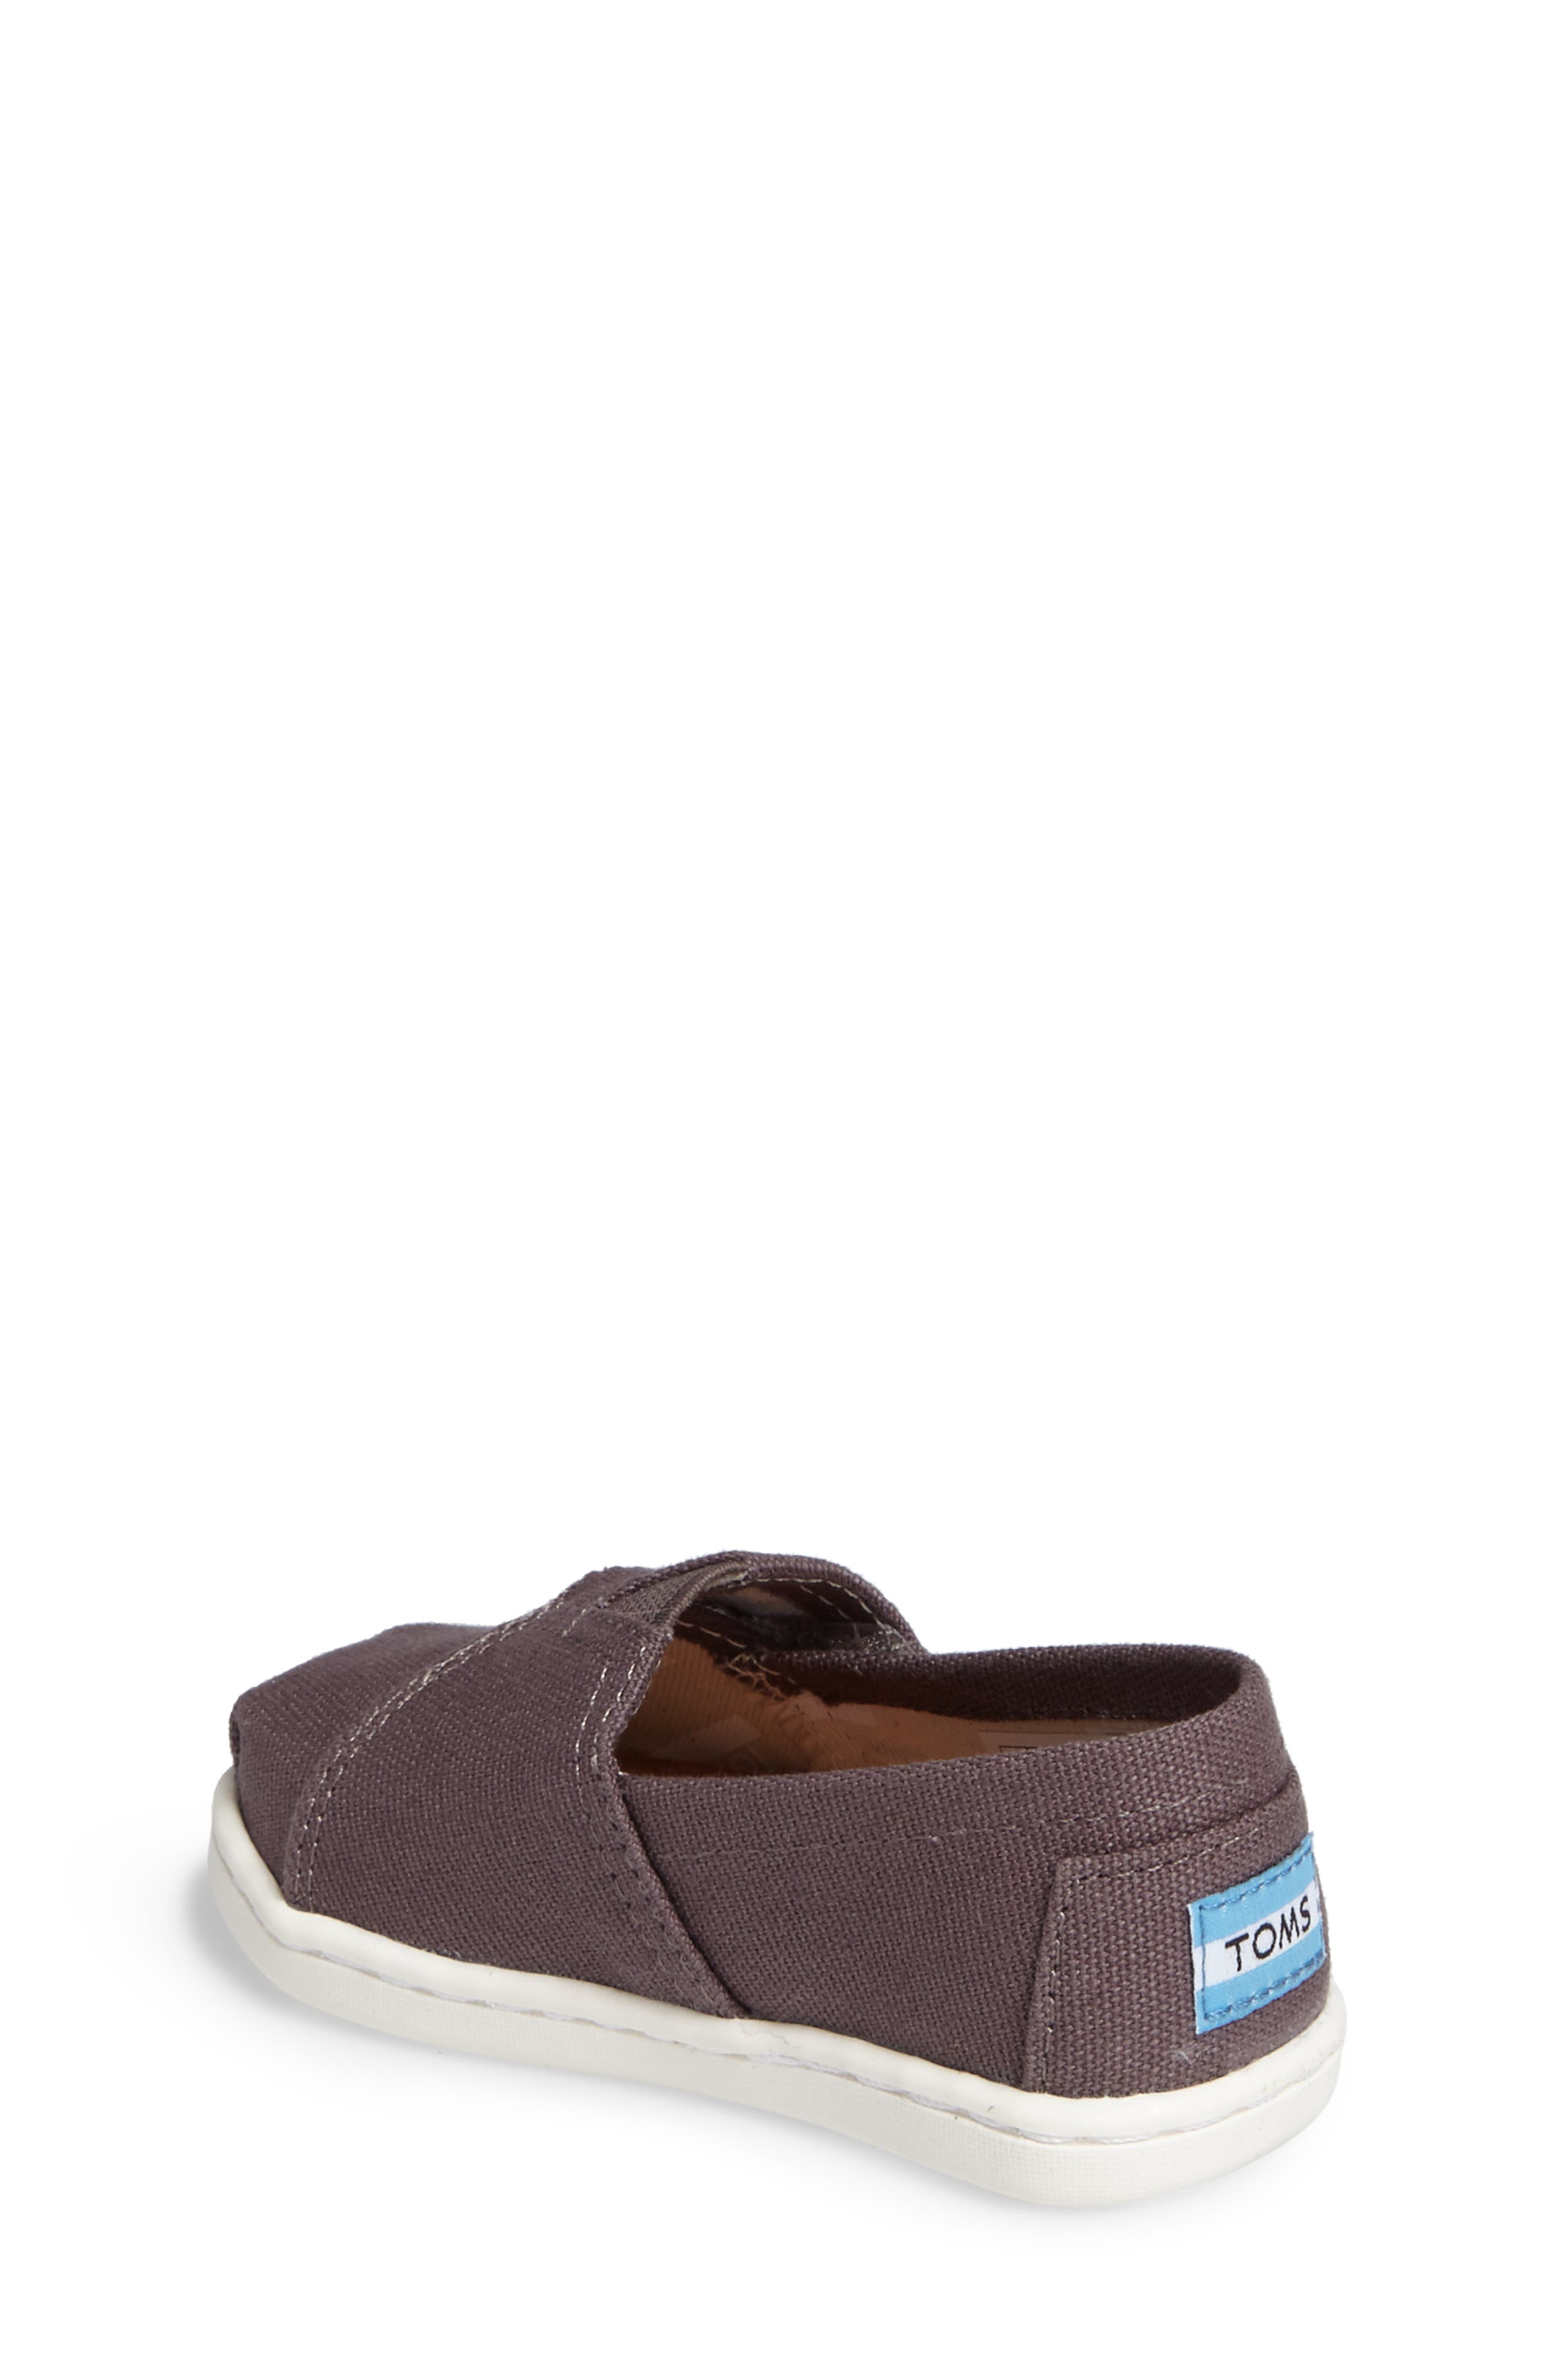 3cca982a6c5 TOMS for Kids